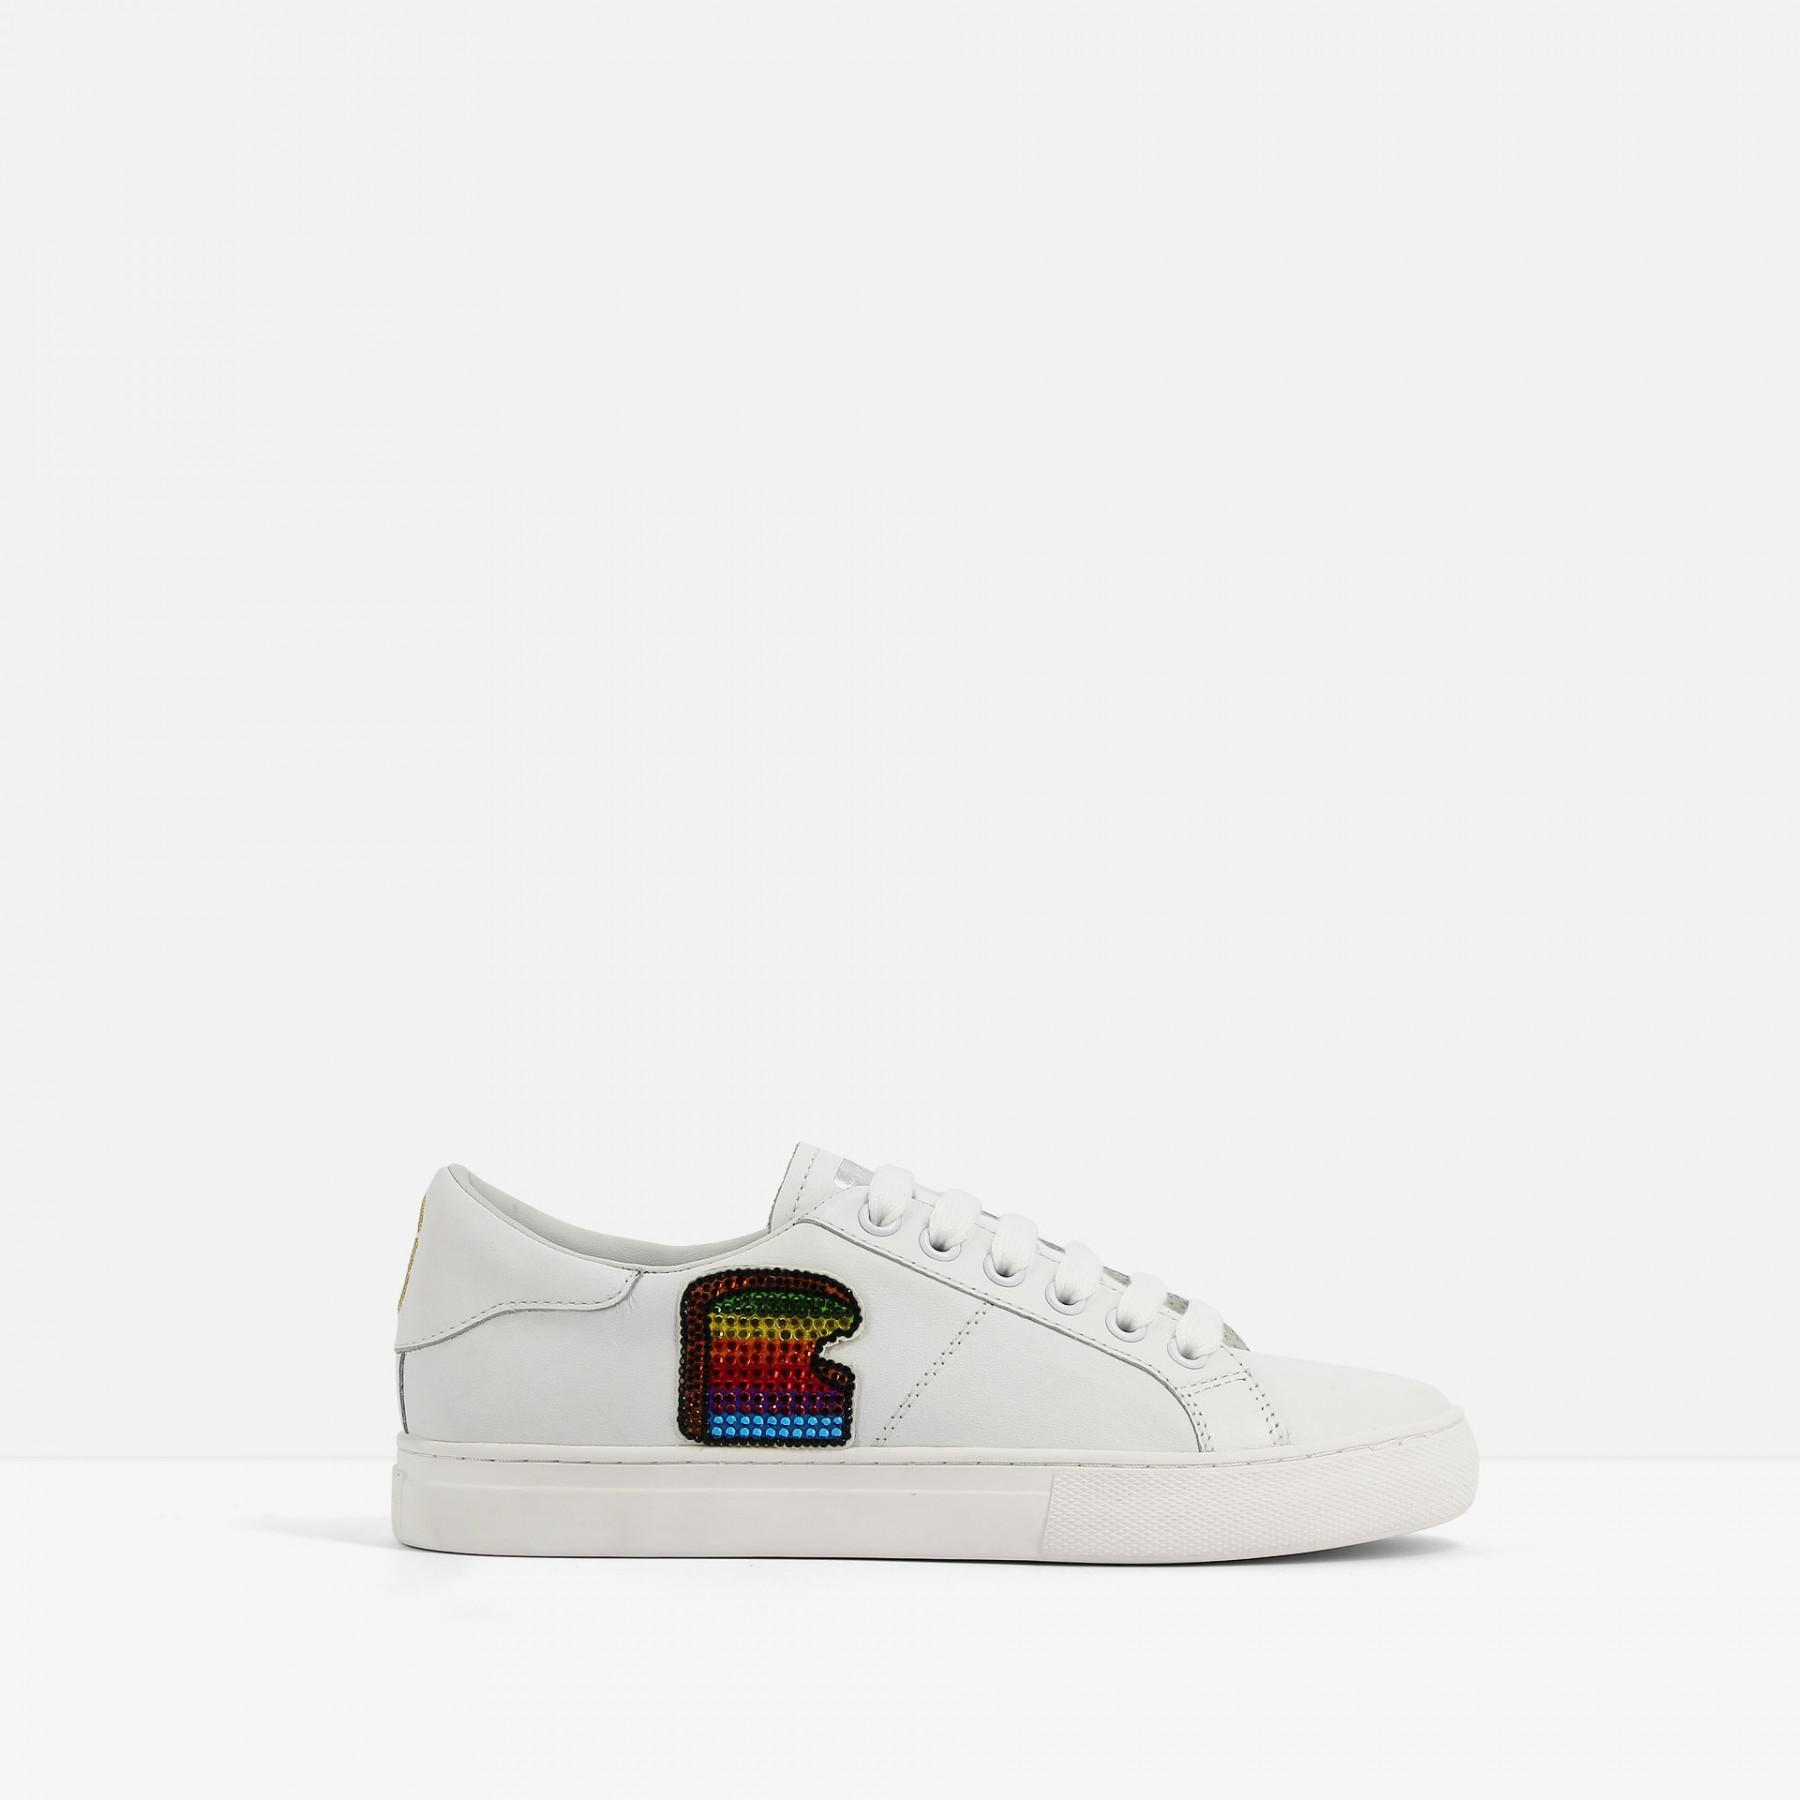 9e373bcbd Marc Jacobs Empire Toast Sneakers in White - Lyst